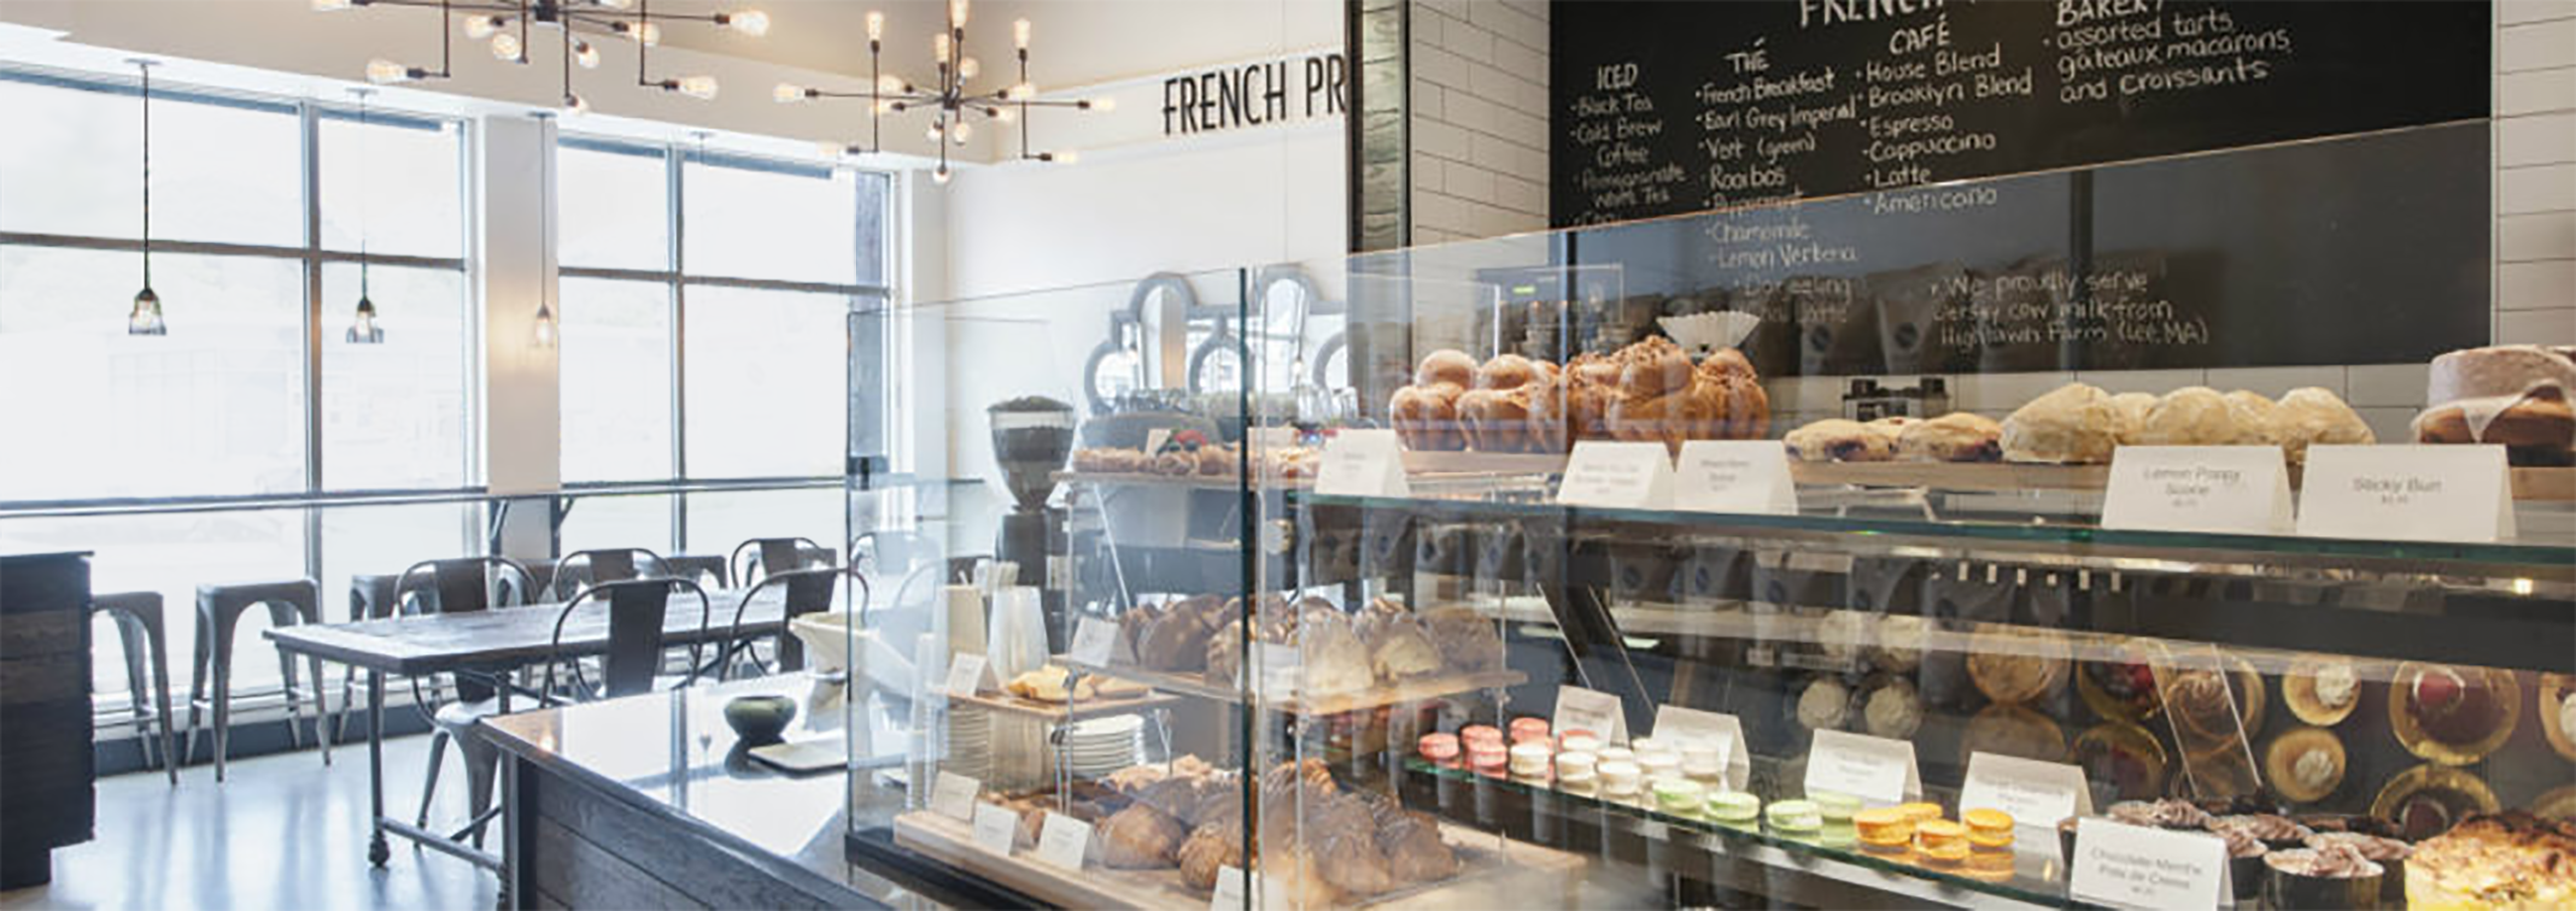 French Press Bakery And Cafe Needham